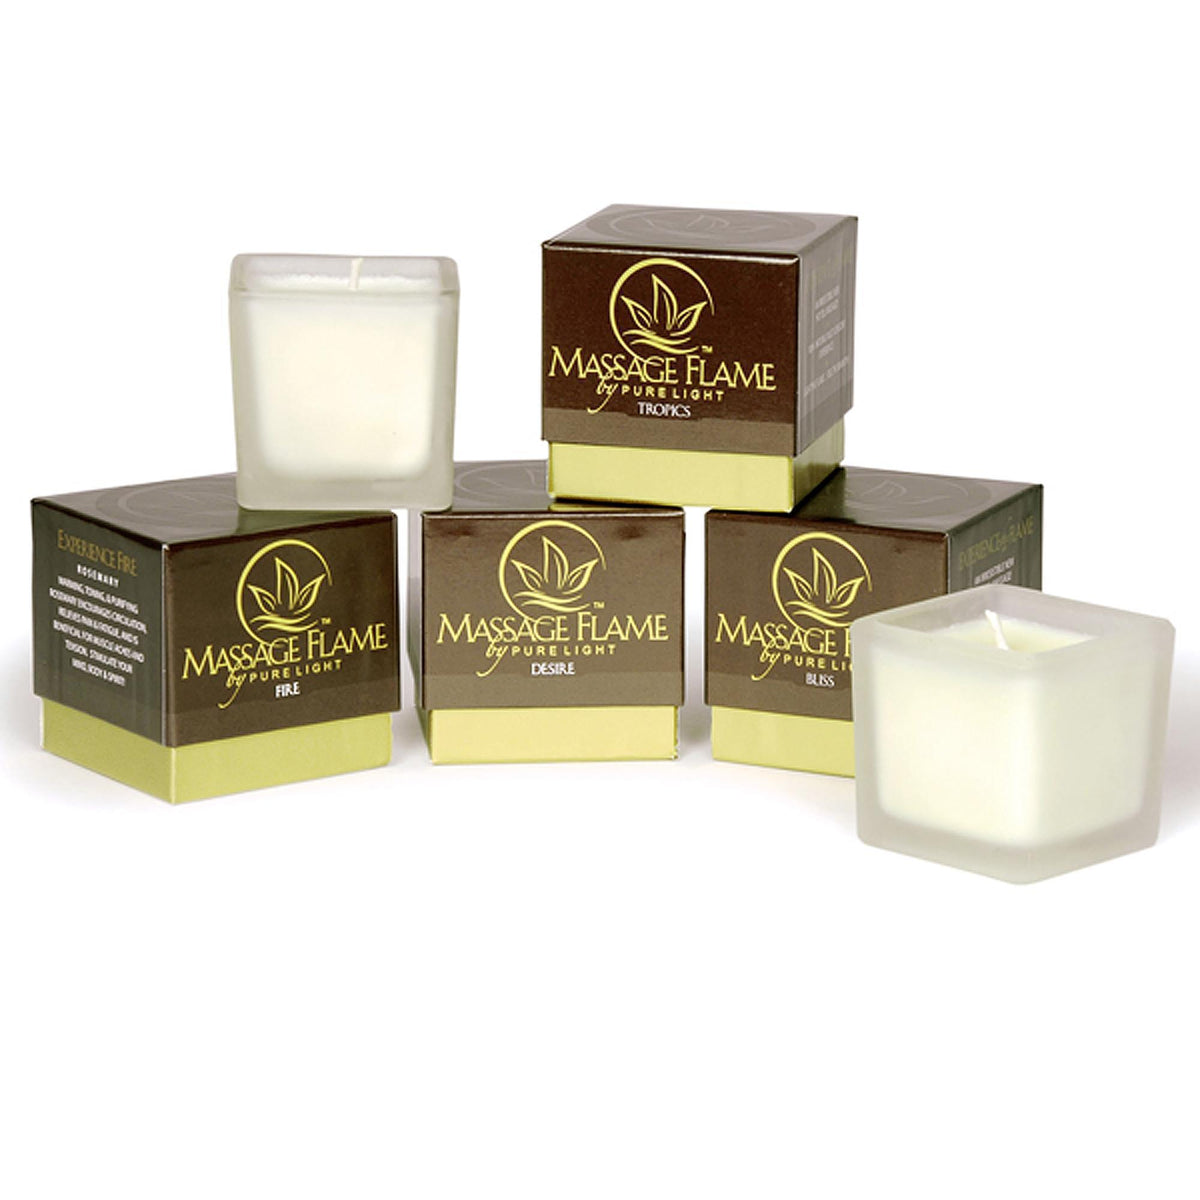 Pure Light Flora Massage Flame Candle